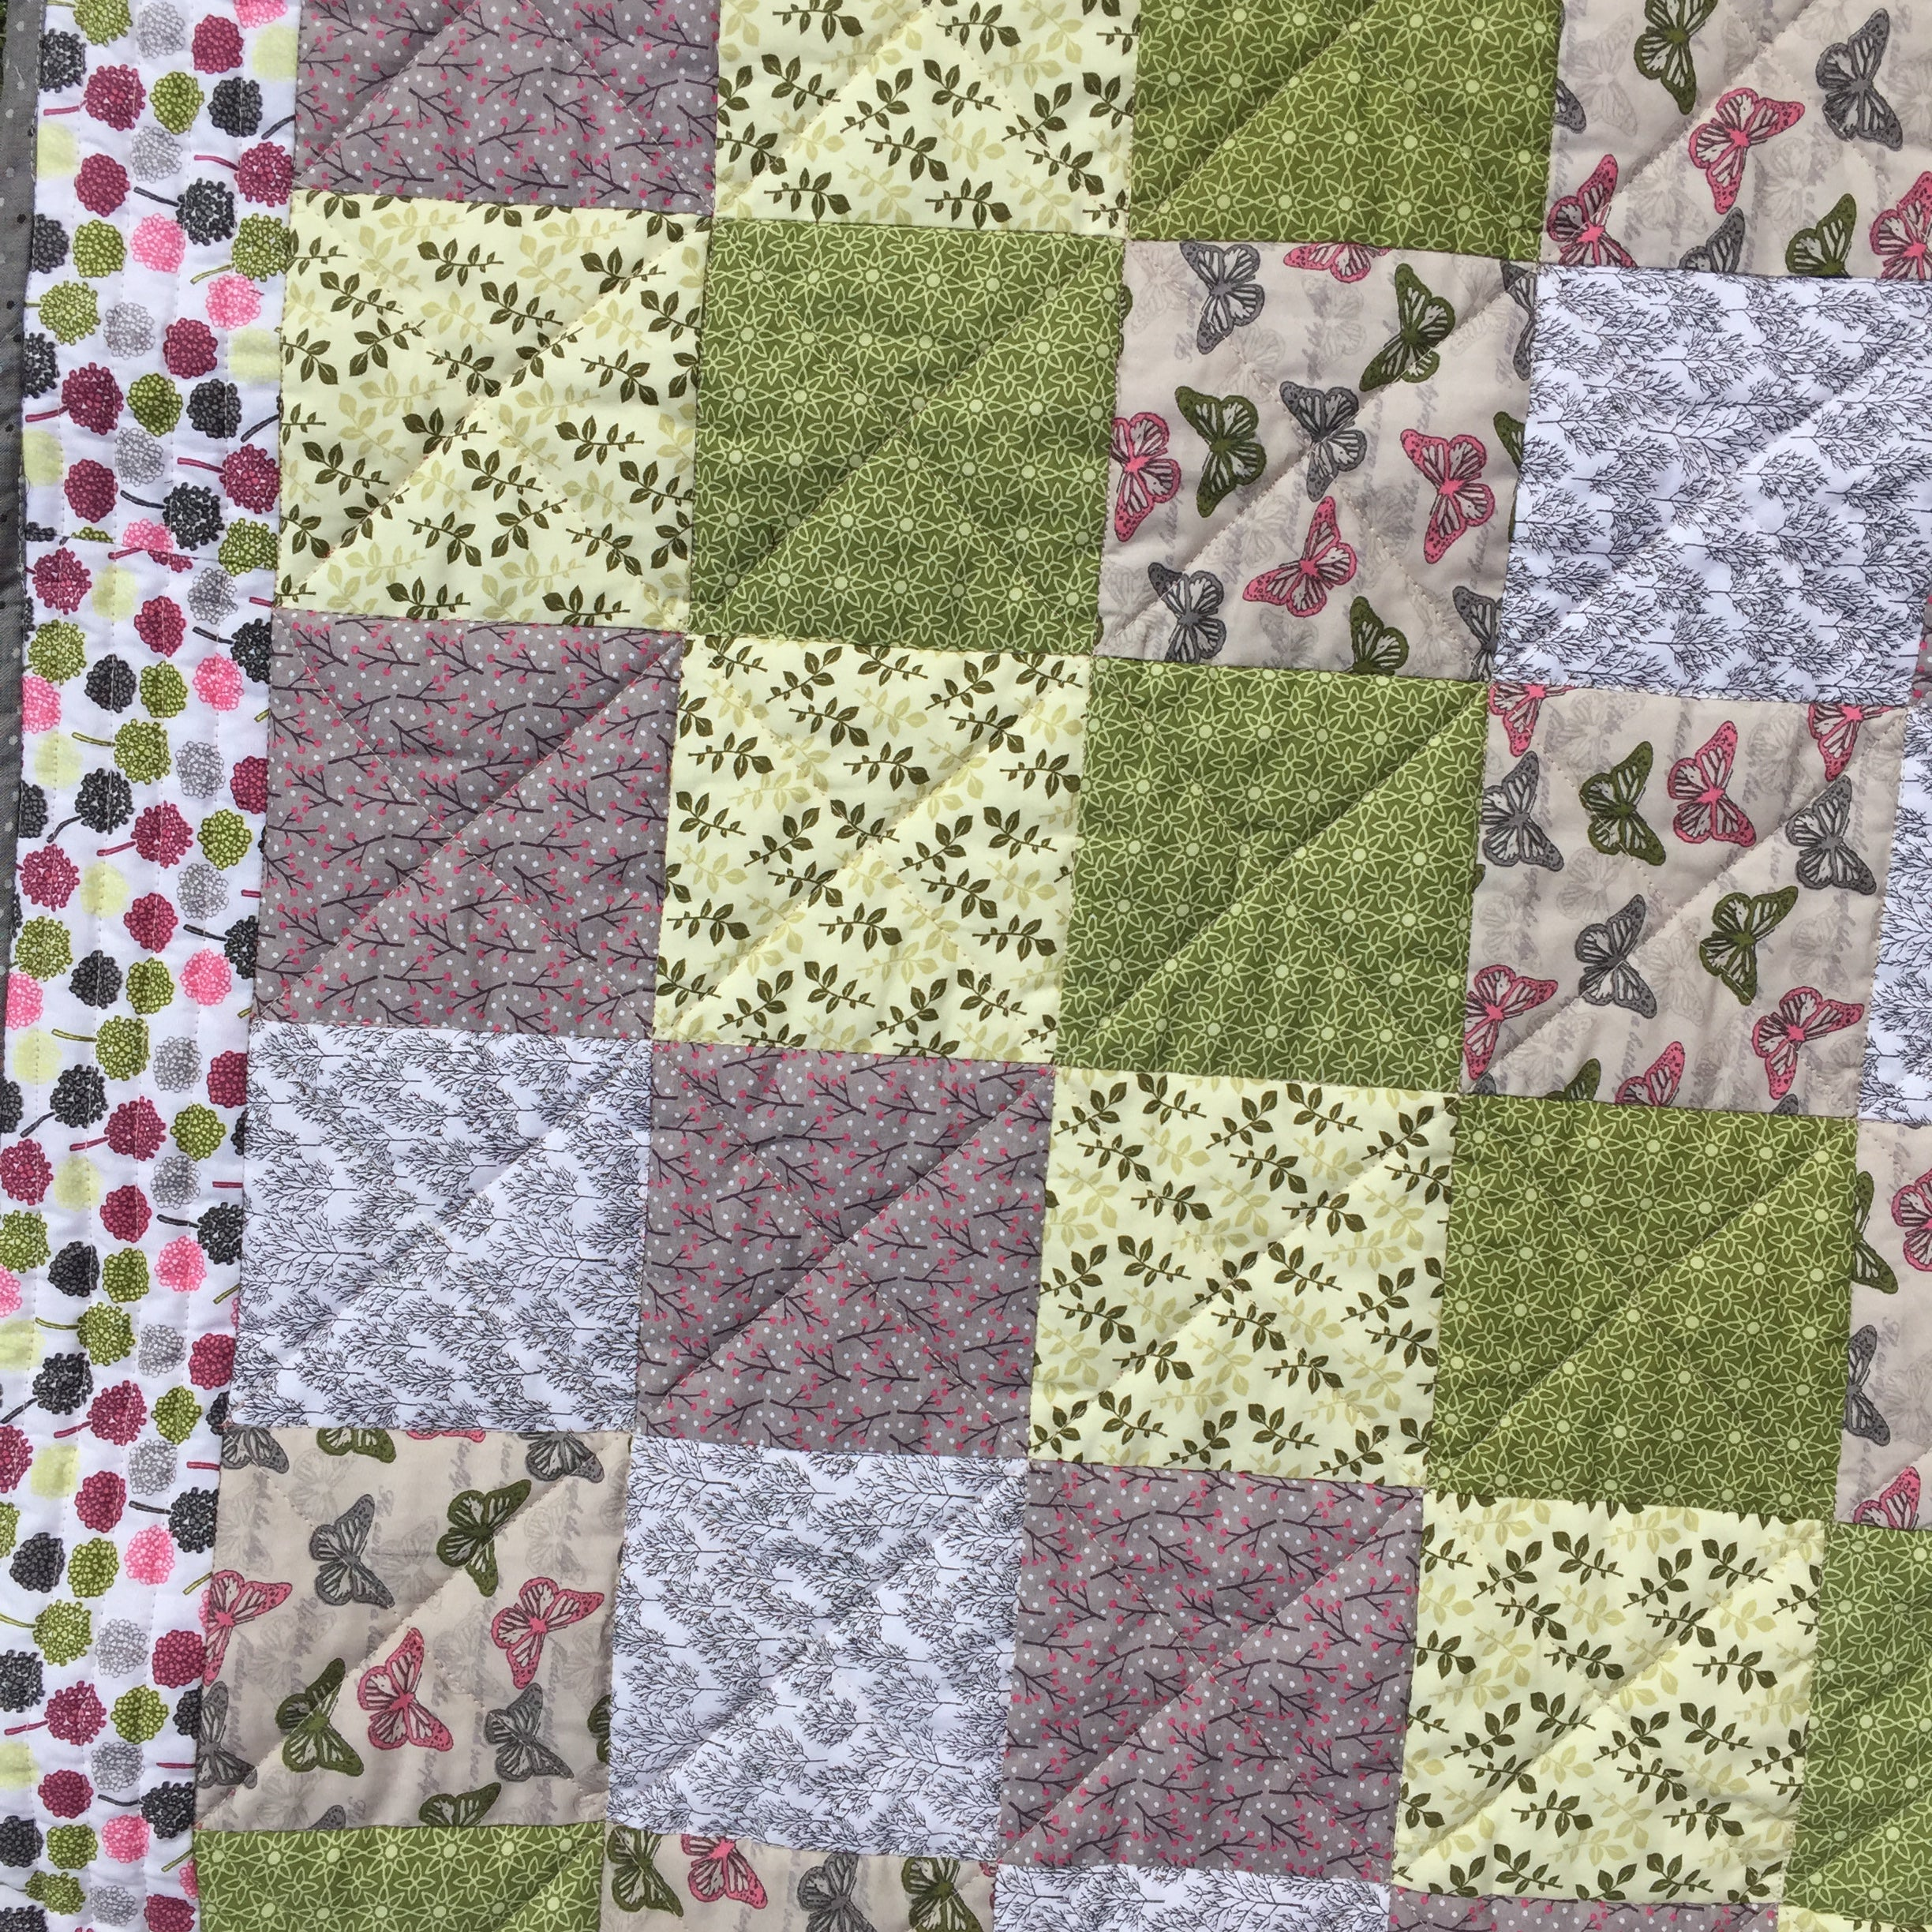 Around the Garden Quilt - Alessandra Handmade Creations